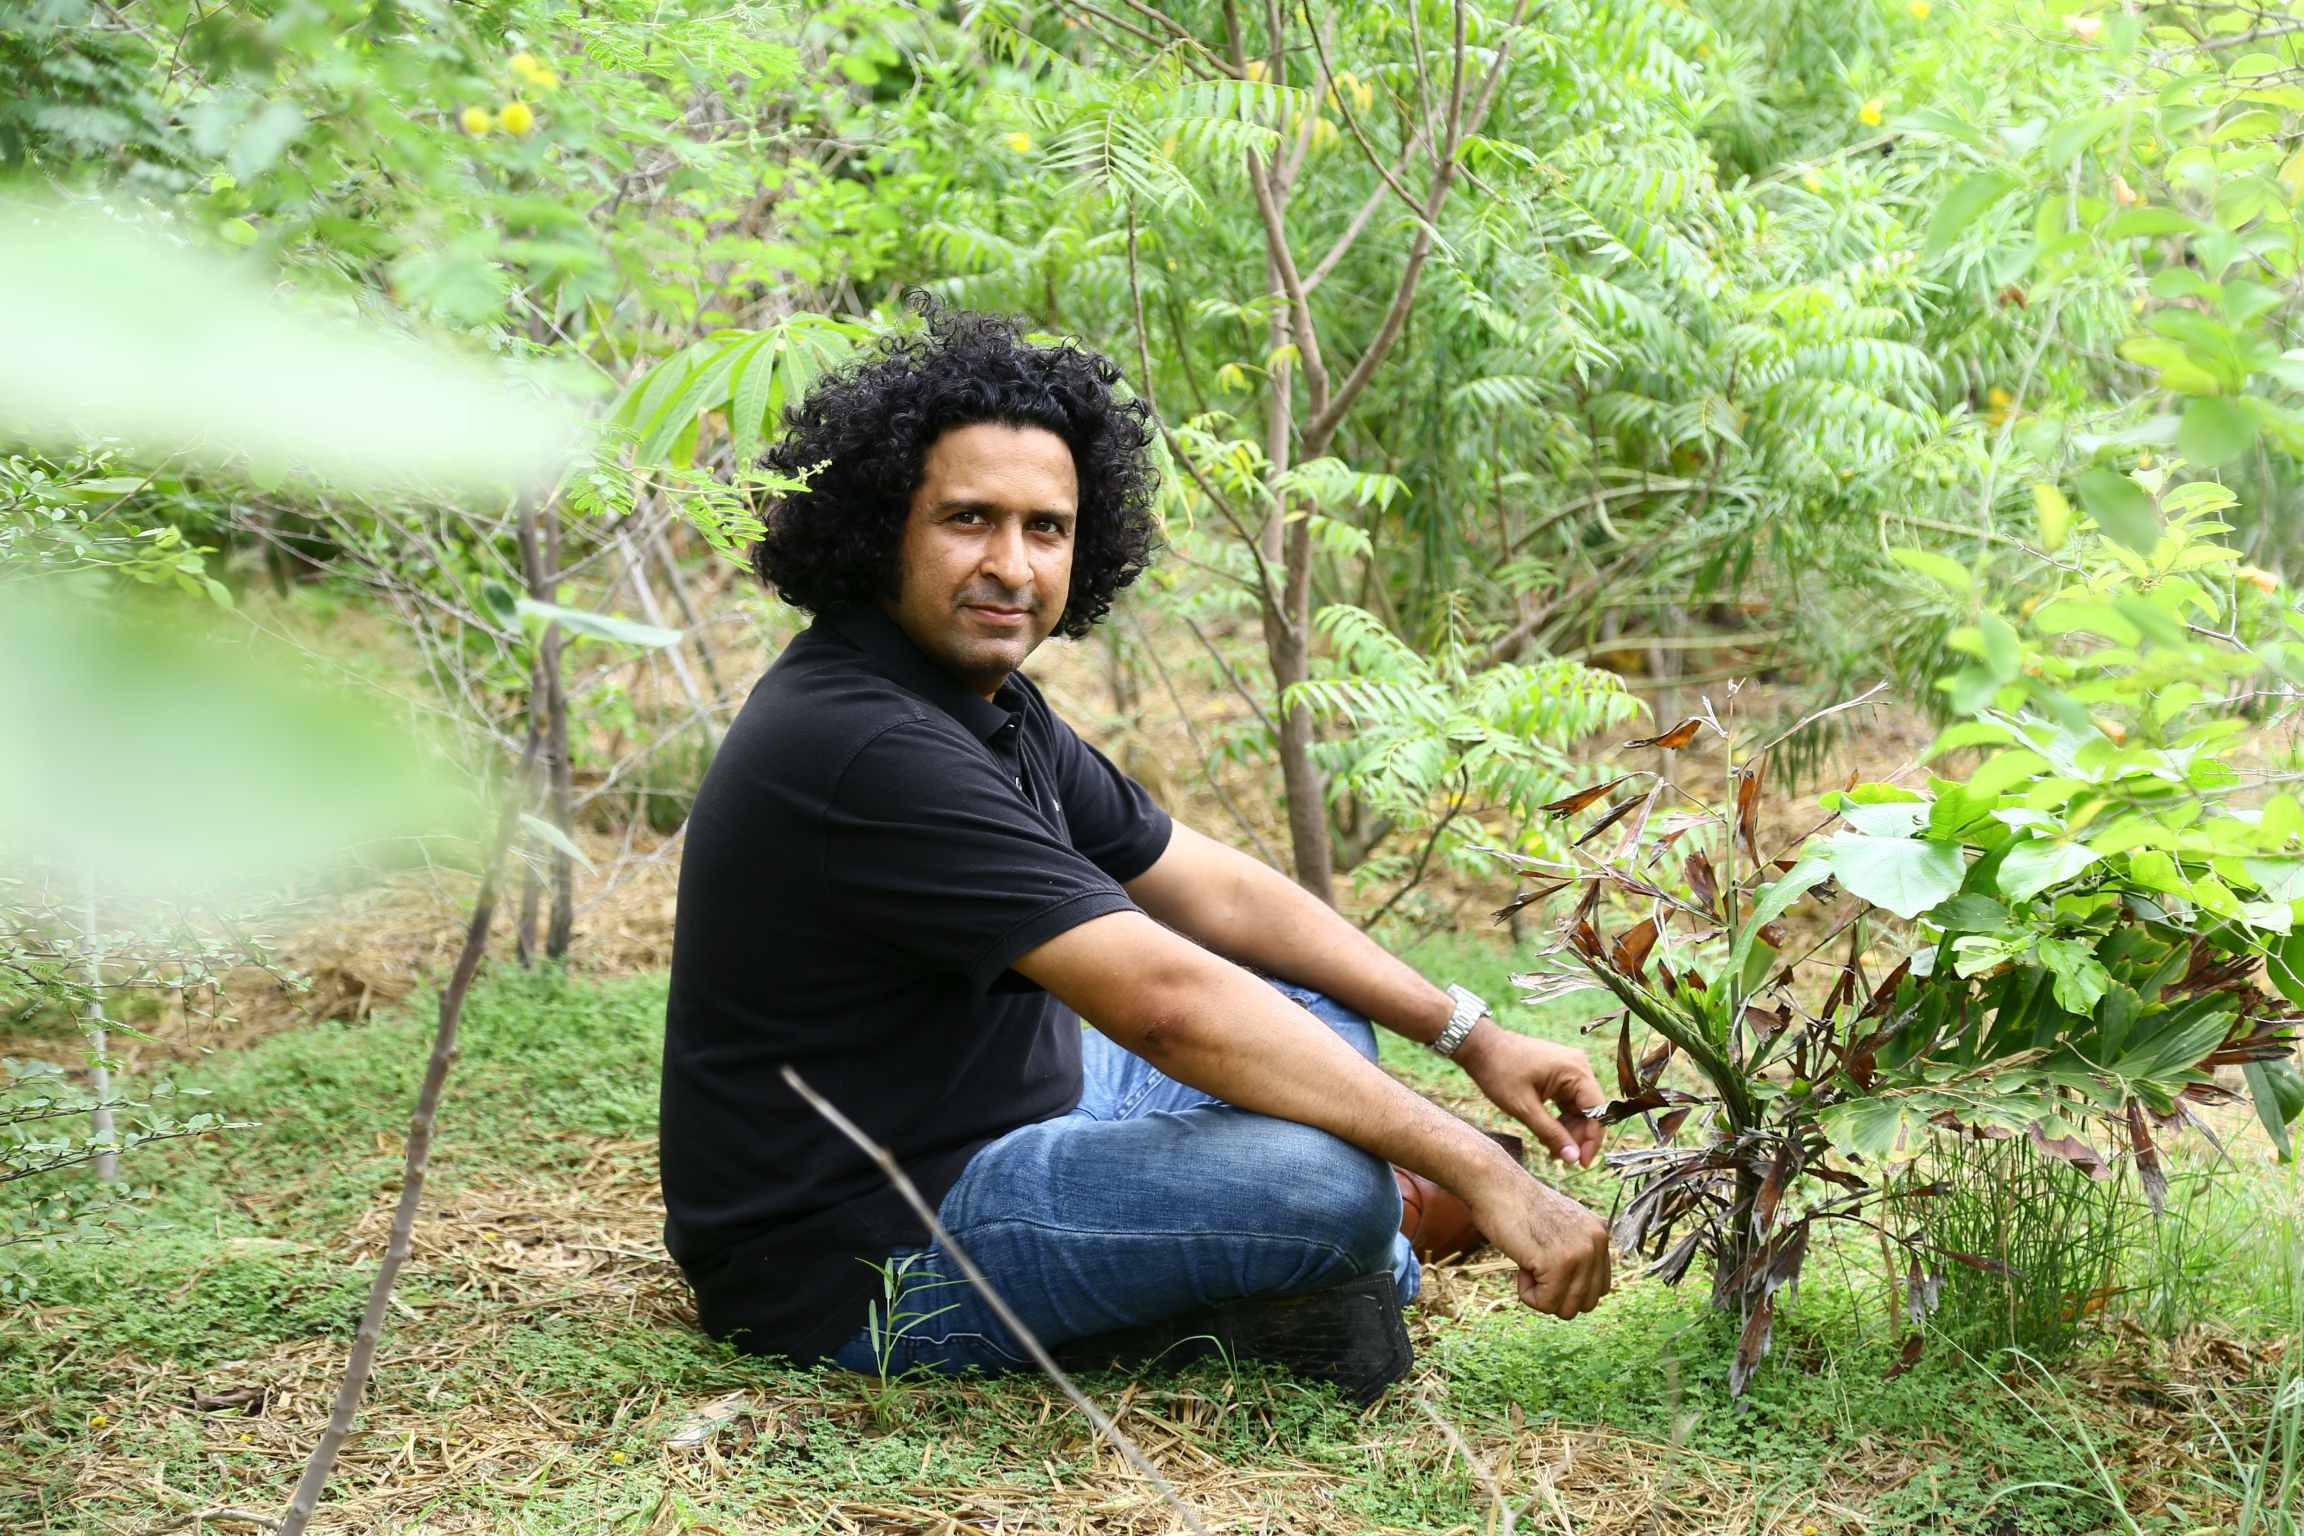 Shahzad Qureshi, founder of Urban Forest, in Karachi, Pakistan.